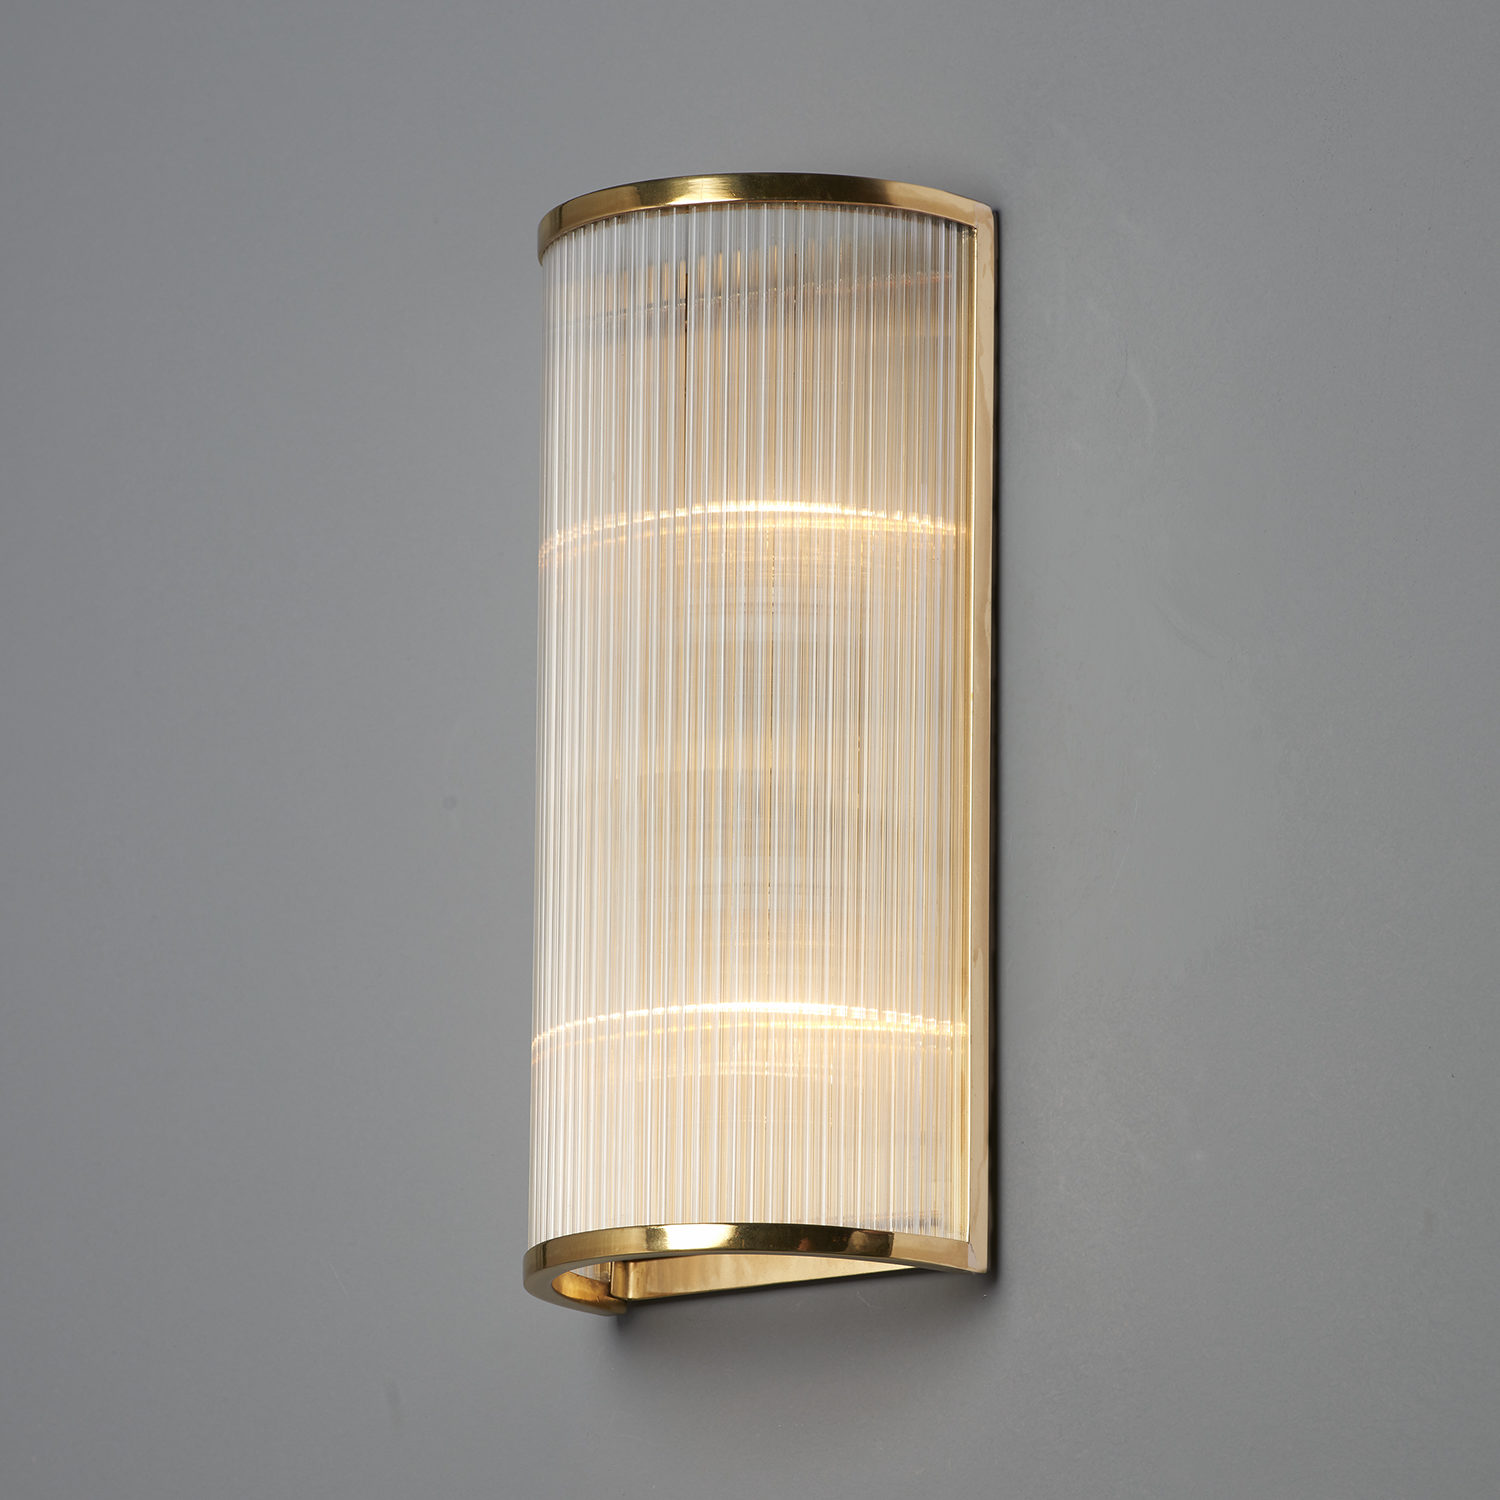 Art Deco Wall Lights : Art deco wall light astele